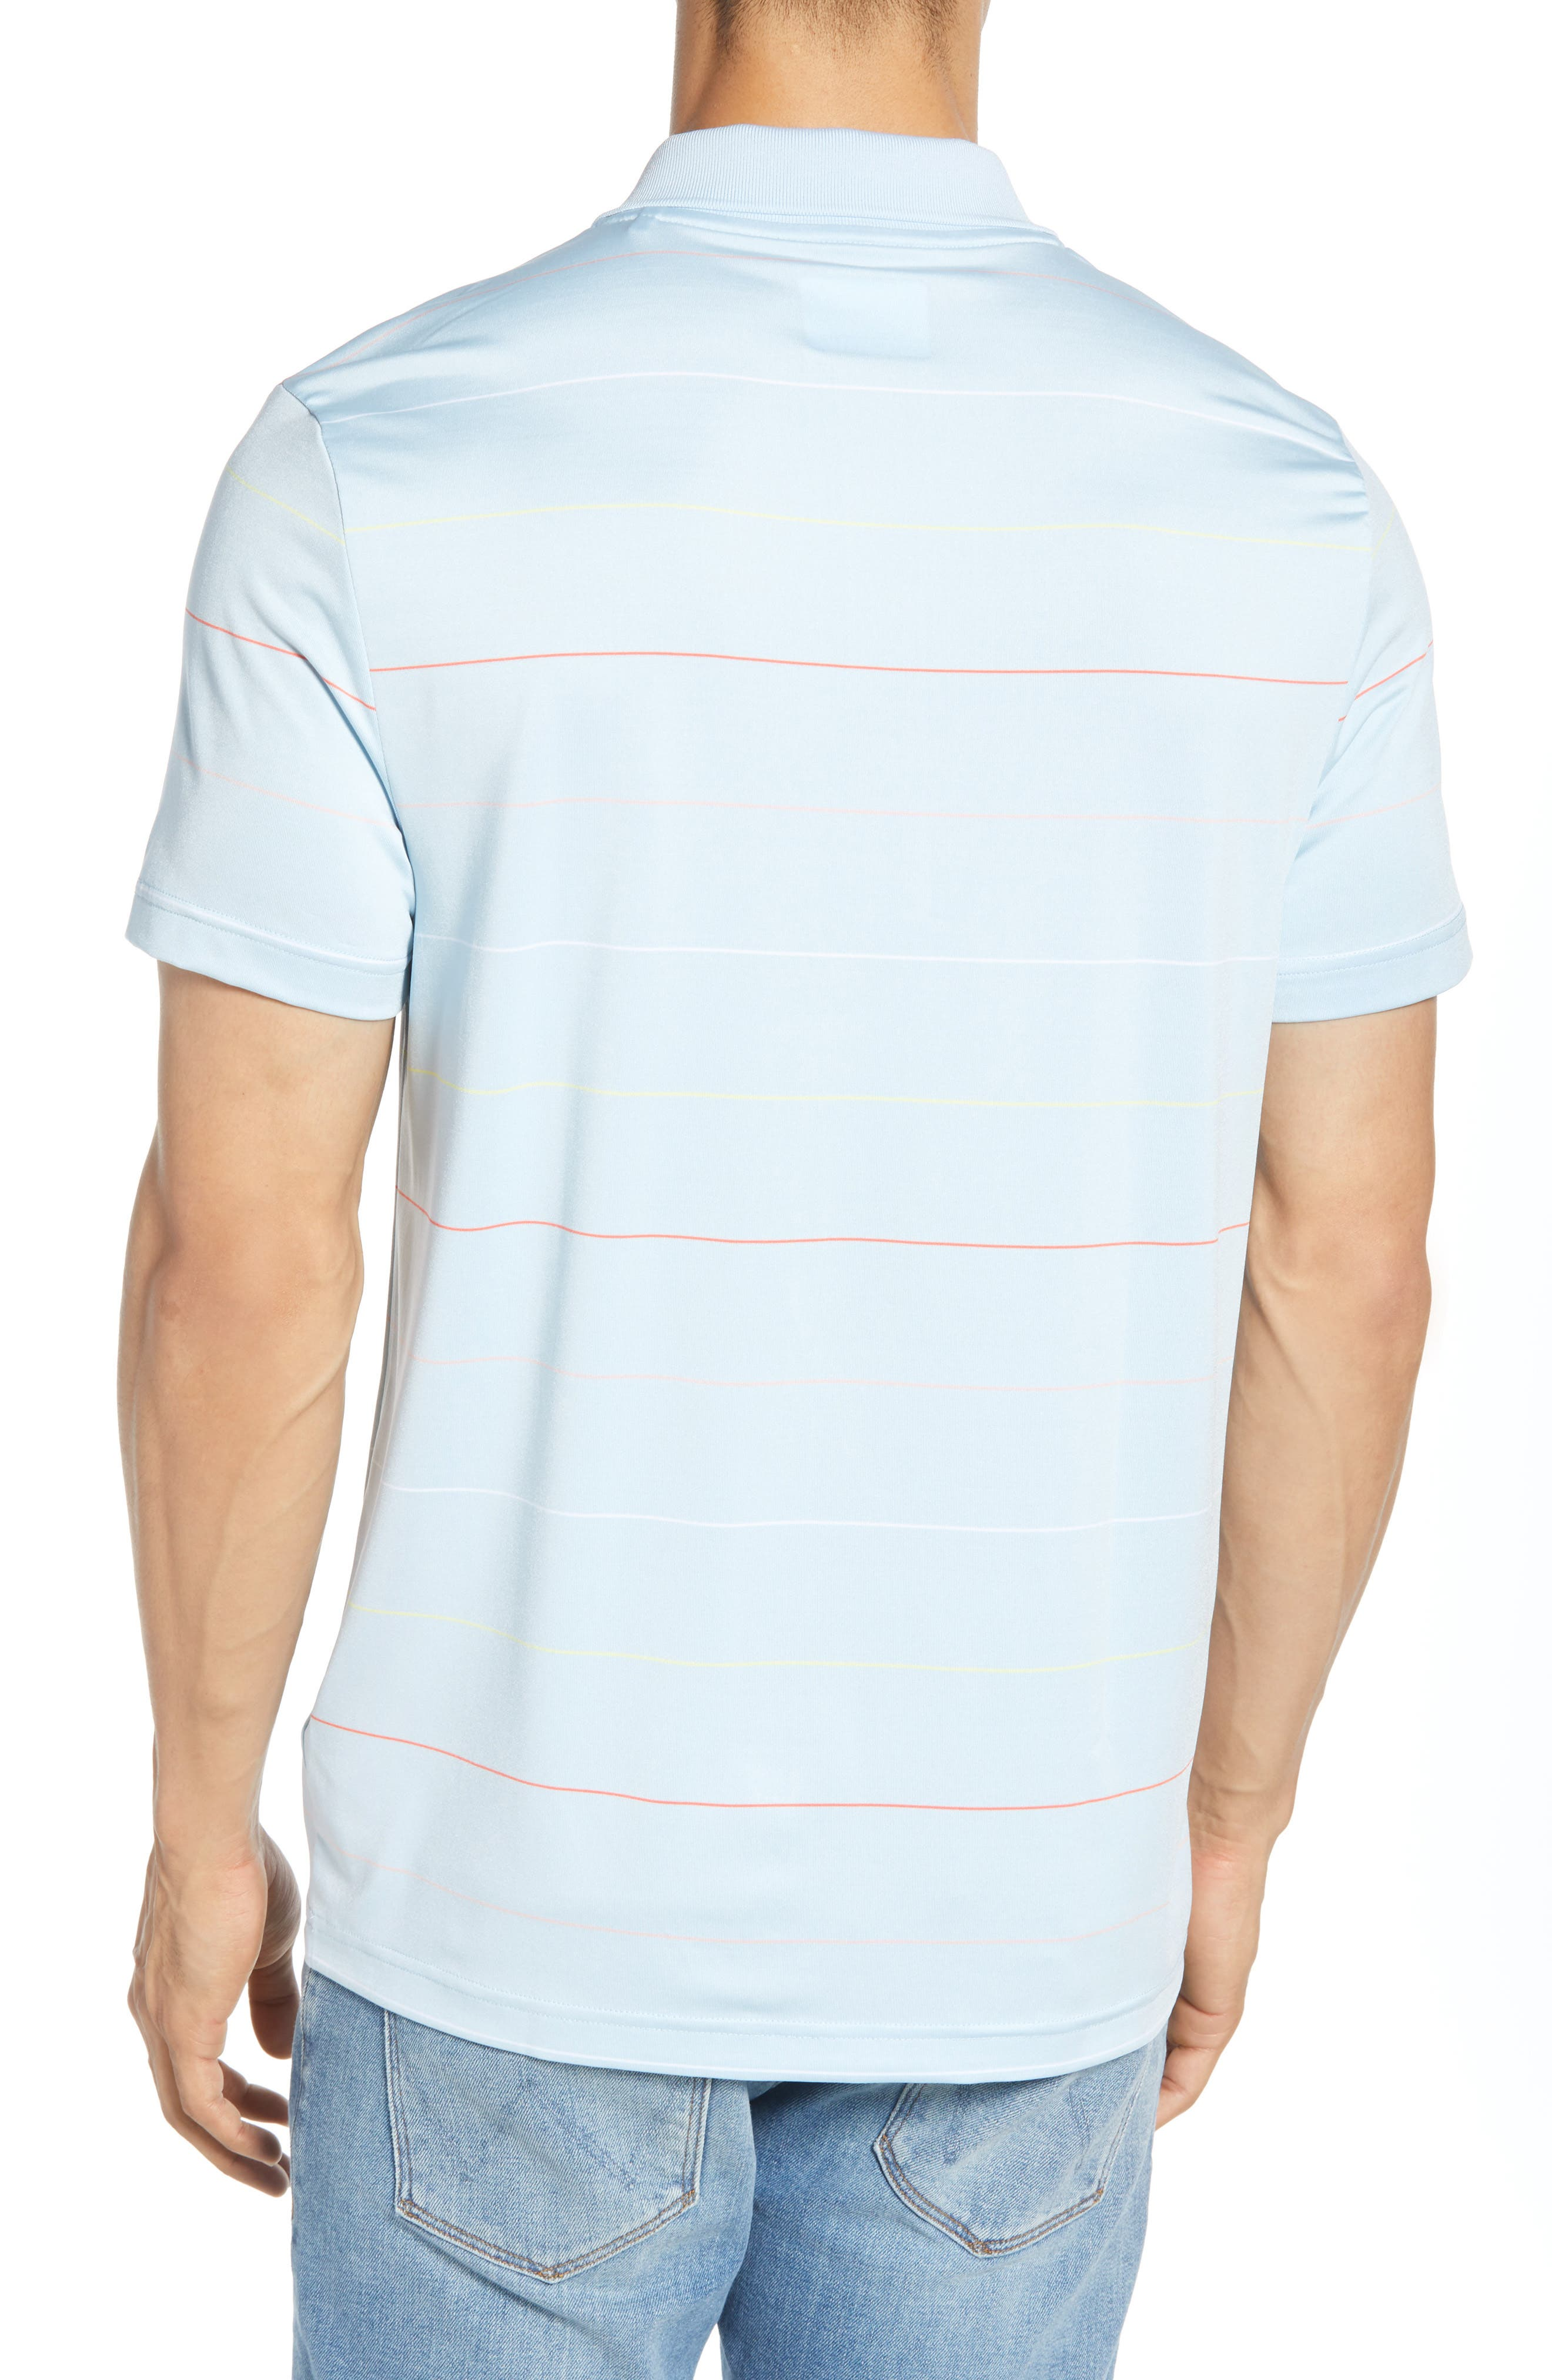 LACOSTE, Ultra Dry Regular Fit Tech Polo, Alternate thumbnail 2, color, DREAM BLUE/ MANGO